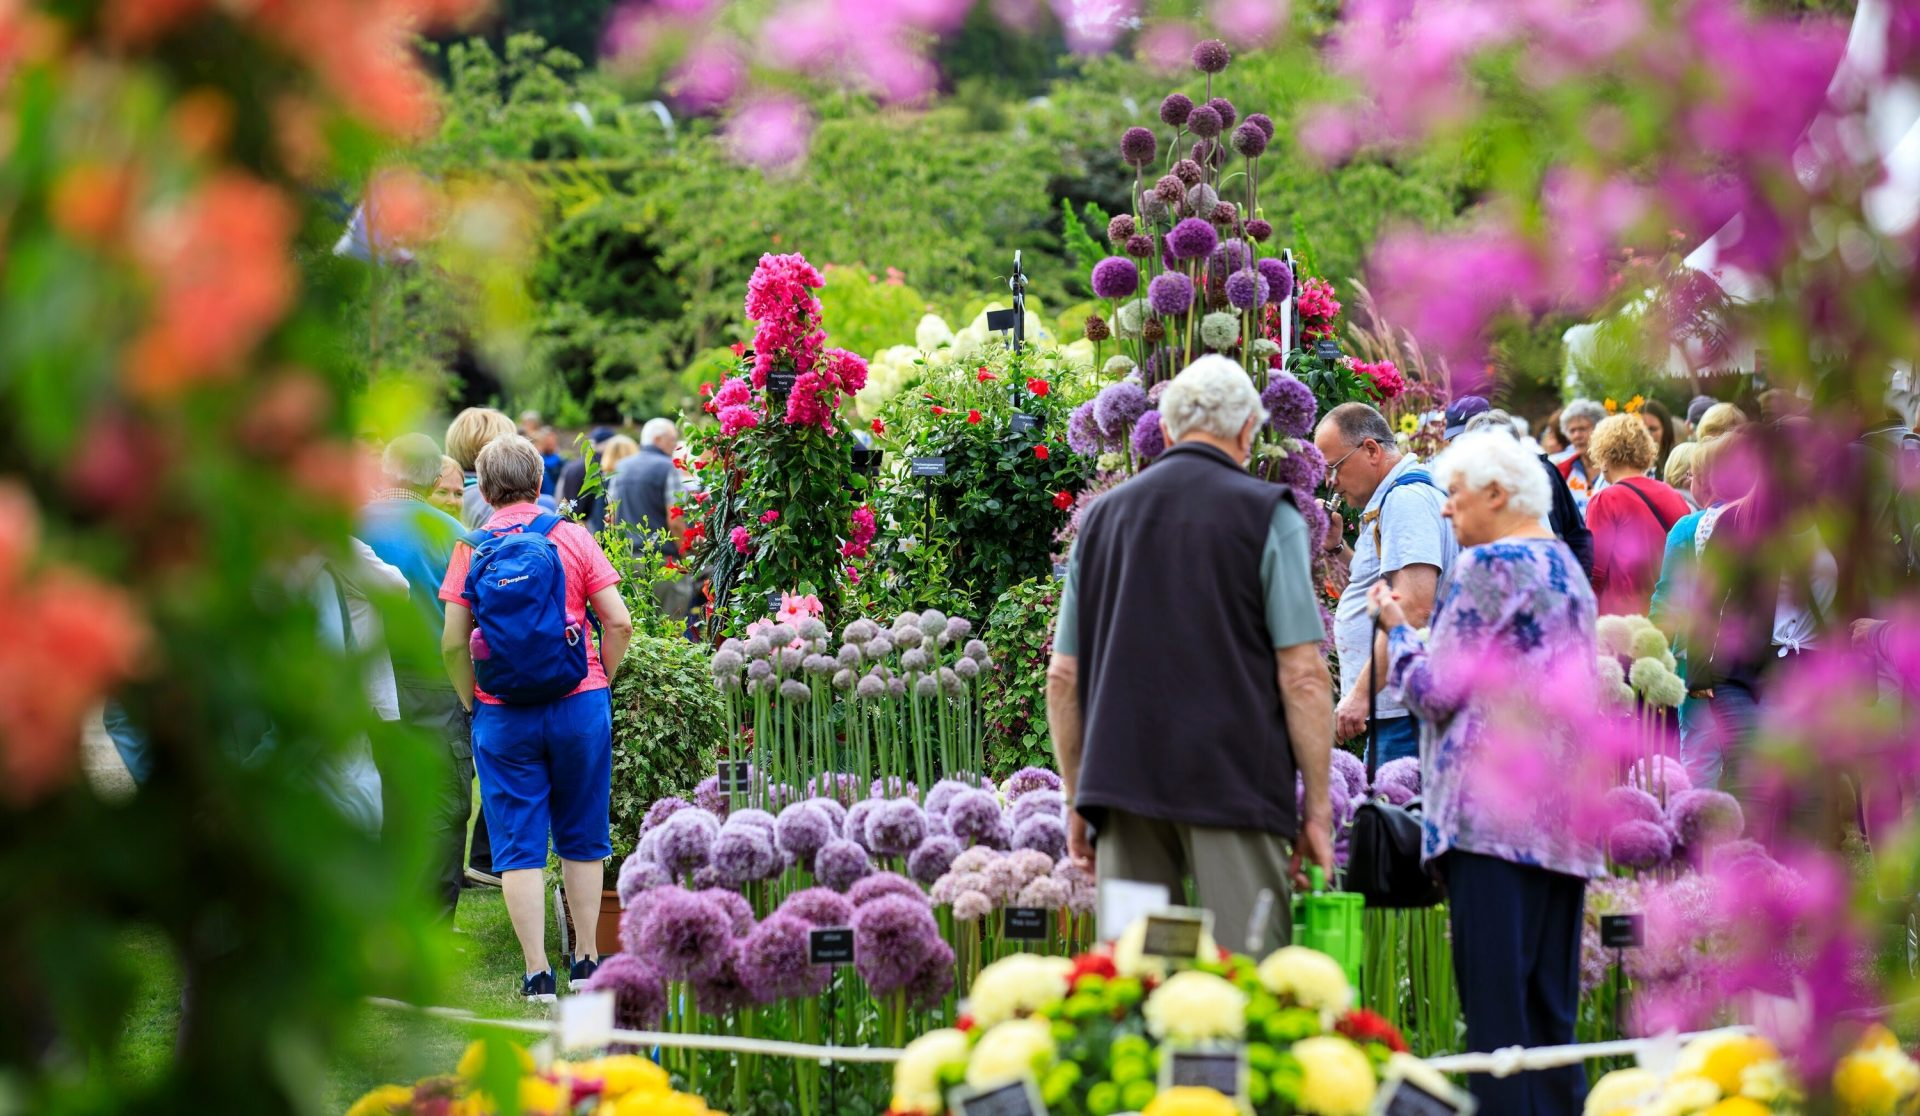 These are the best garden shows and festivals to visit in 2020